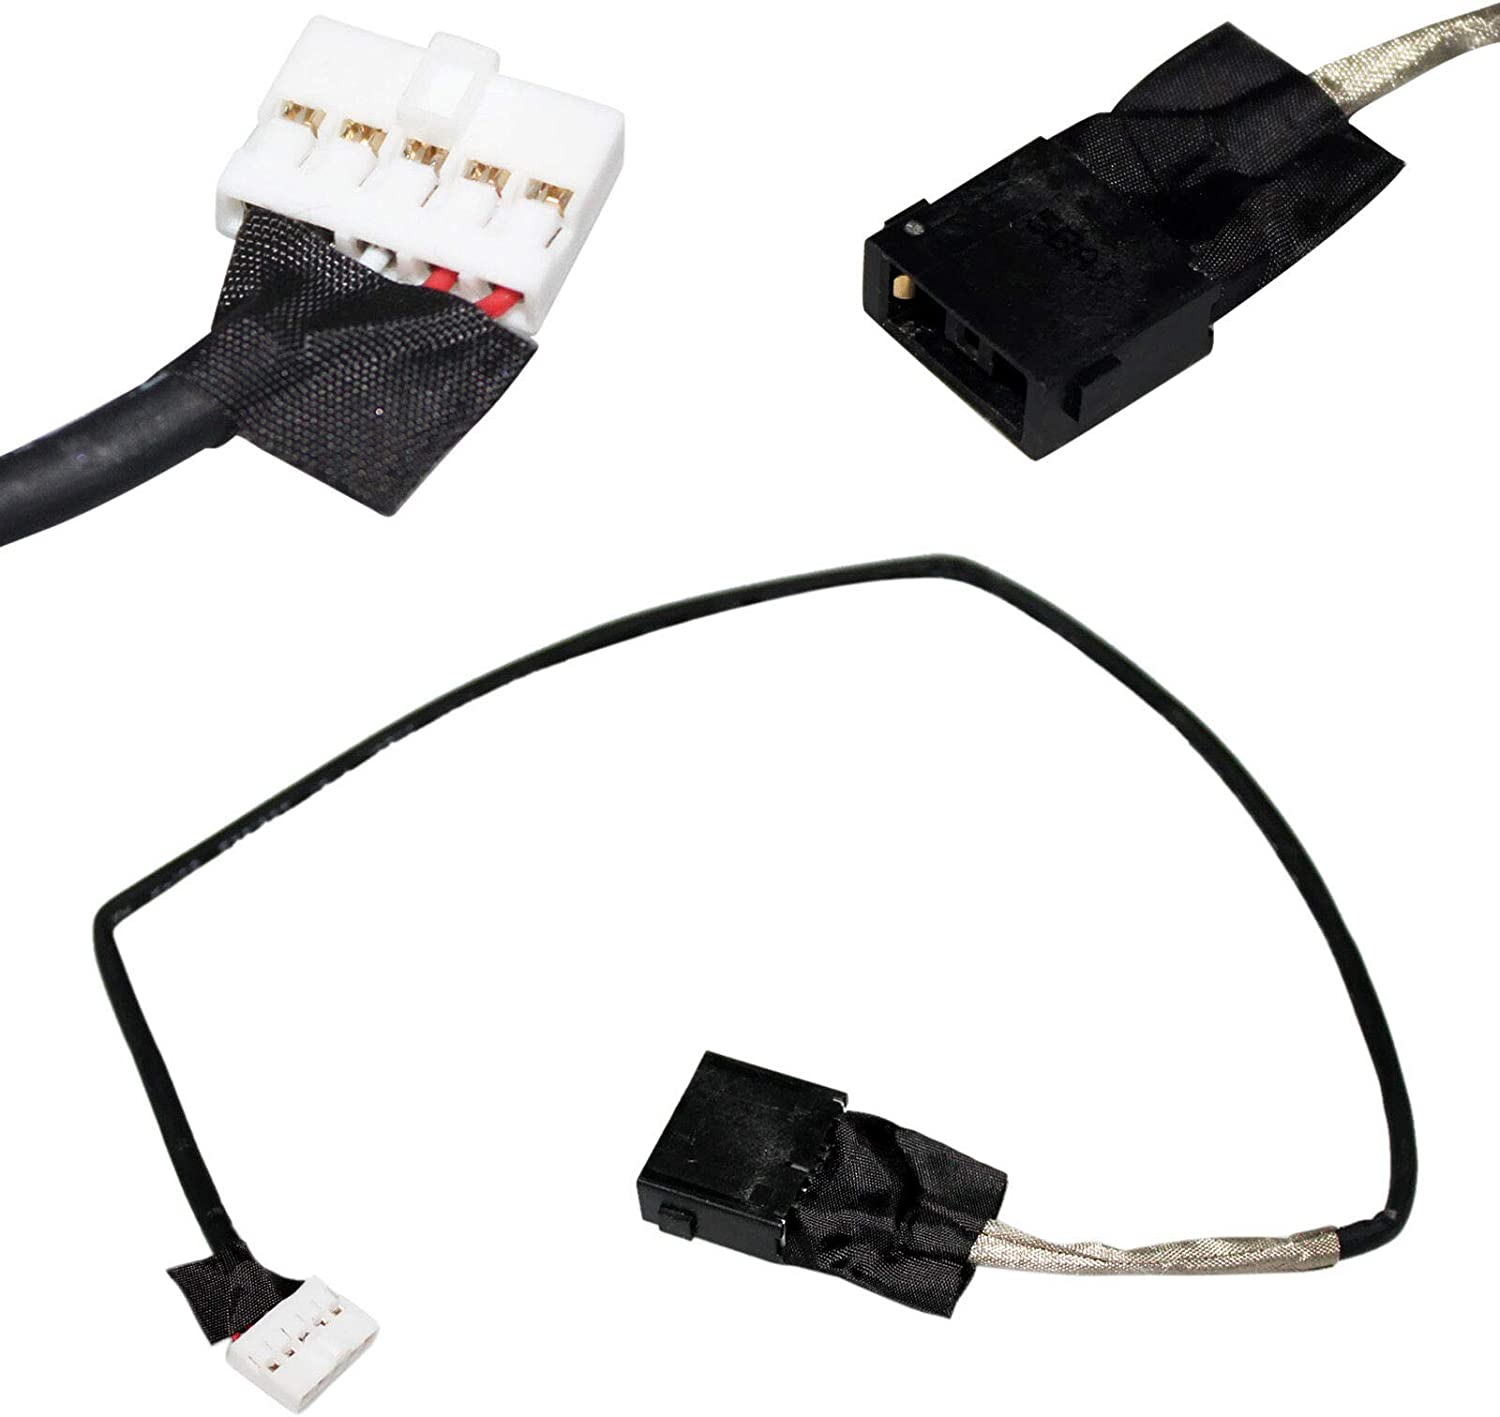 GinTai DC in Power Jack Harness Cable Socket Plug Connector Port Replacement for Lenovo Flex 3-1570 80JM 450.03S02.0011 10pcs